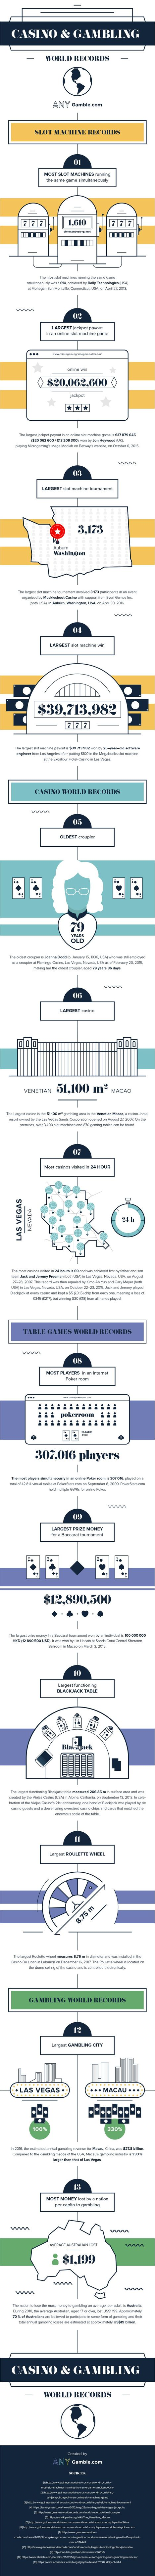 Casino and Gambling World Records